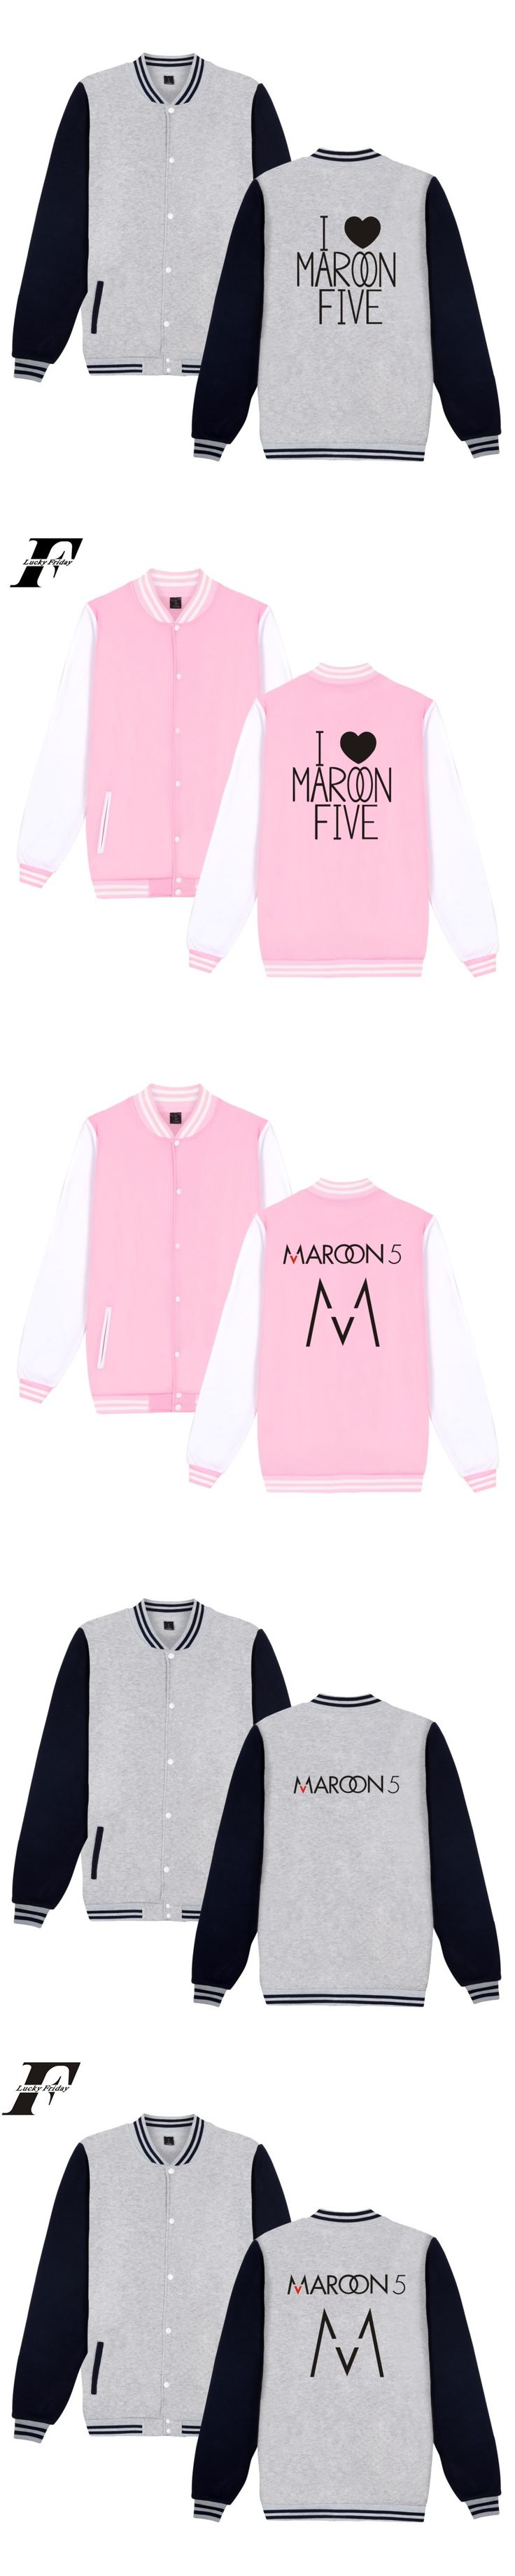 winter jacket men jackets men Maroon 5 jaqueta masculina bomber Jacket baseball fitness Sweatshirt and streetwear jacket